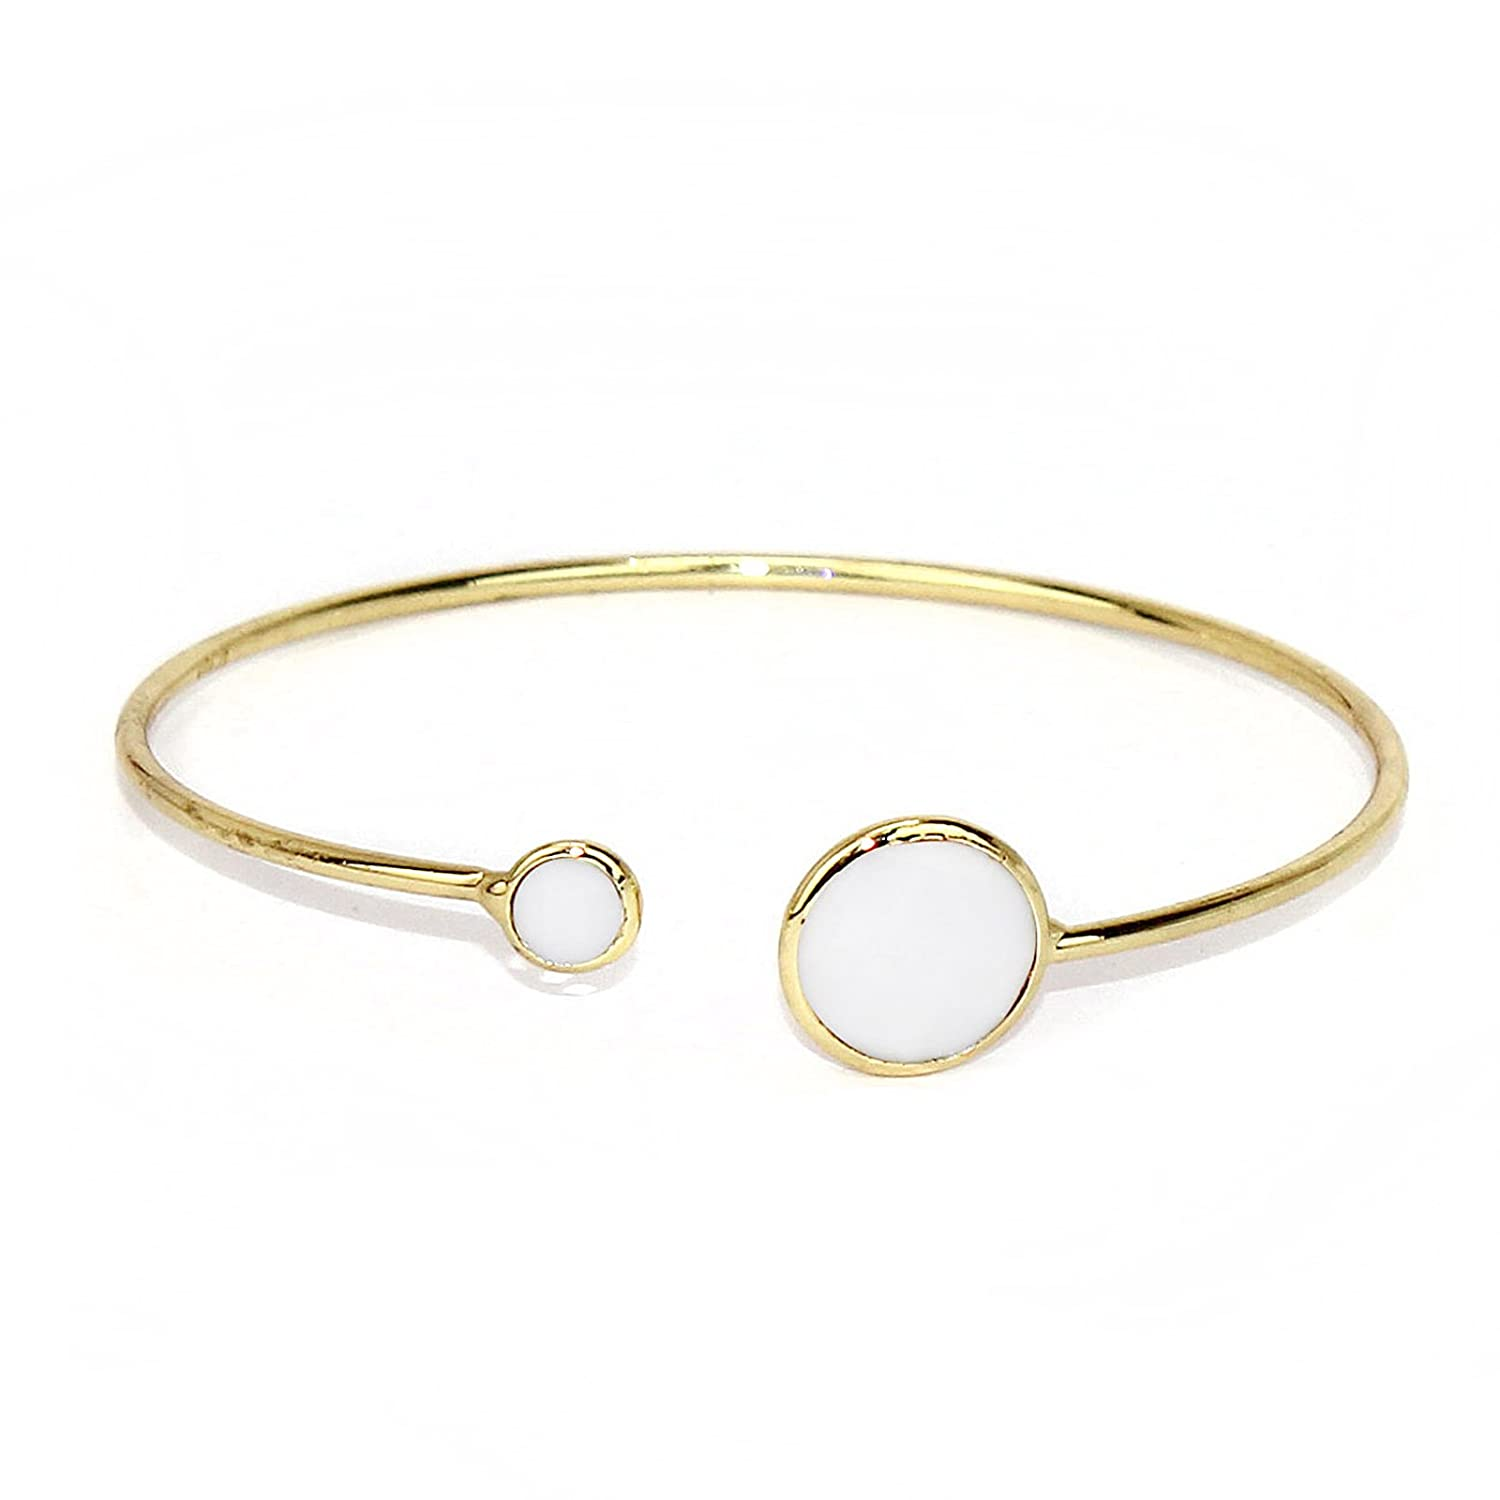 POMINA Open End Bangle Bracelet with Transparent//Opaque Glass Stones